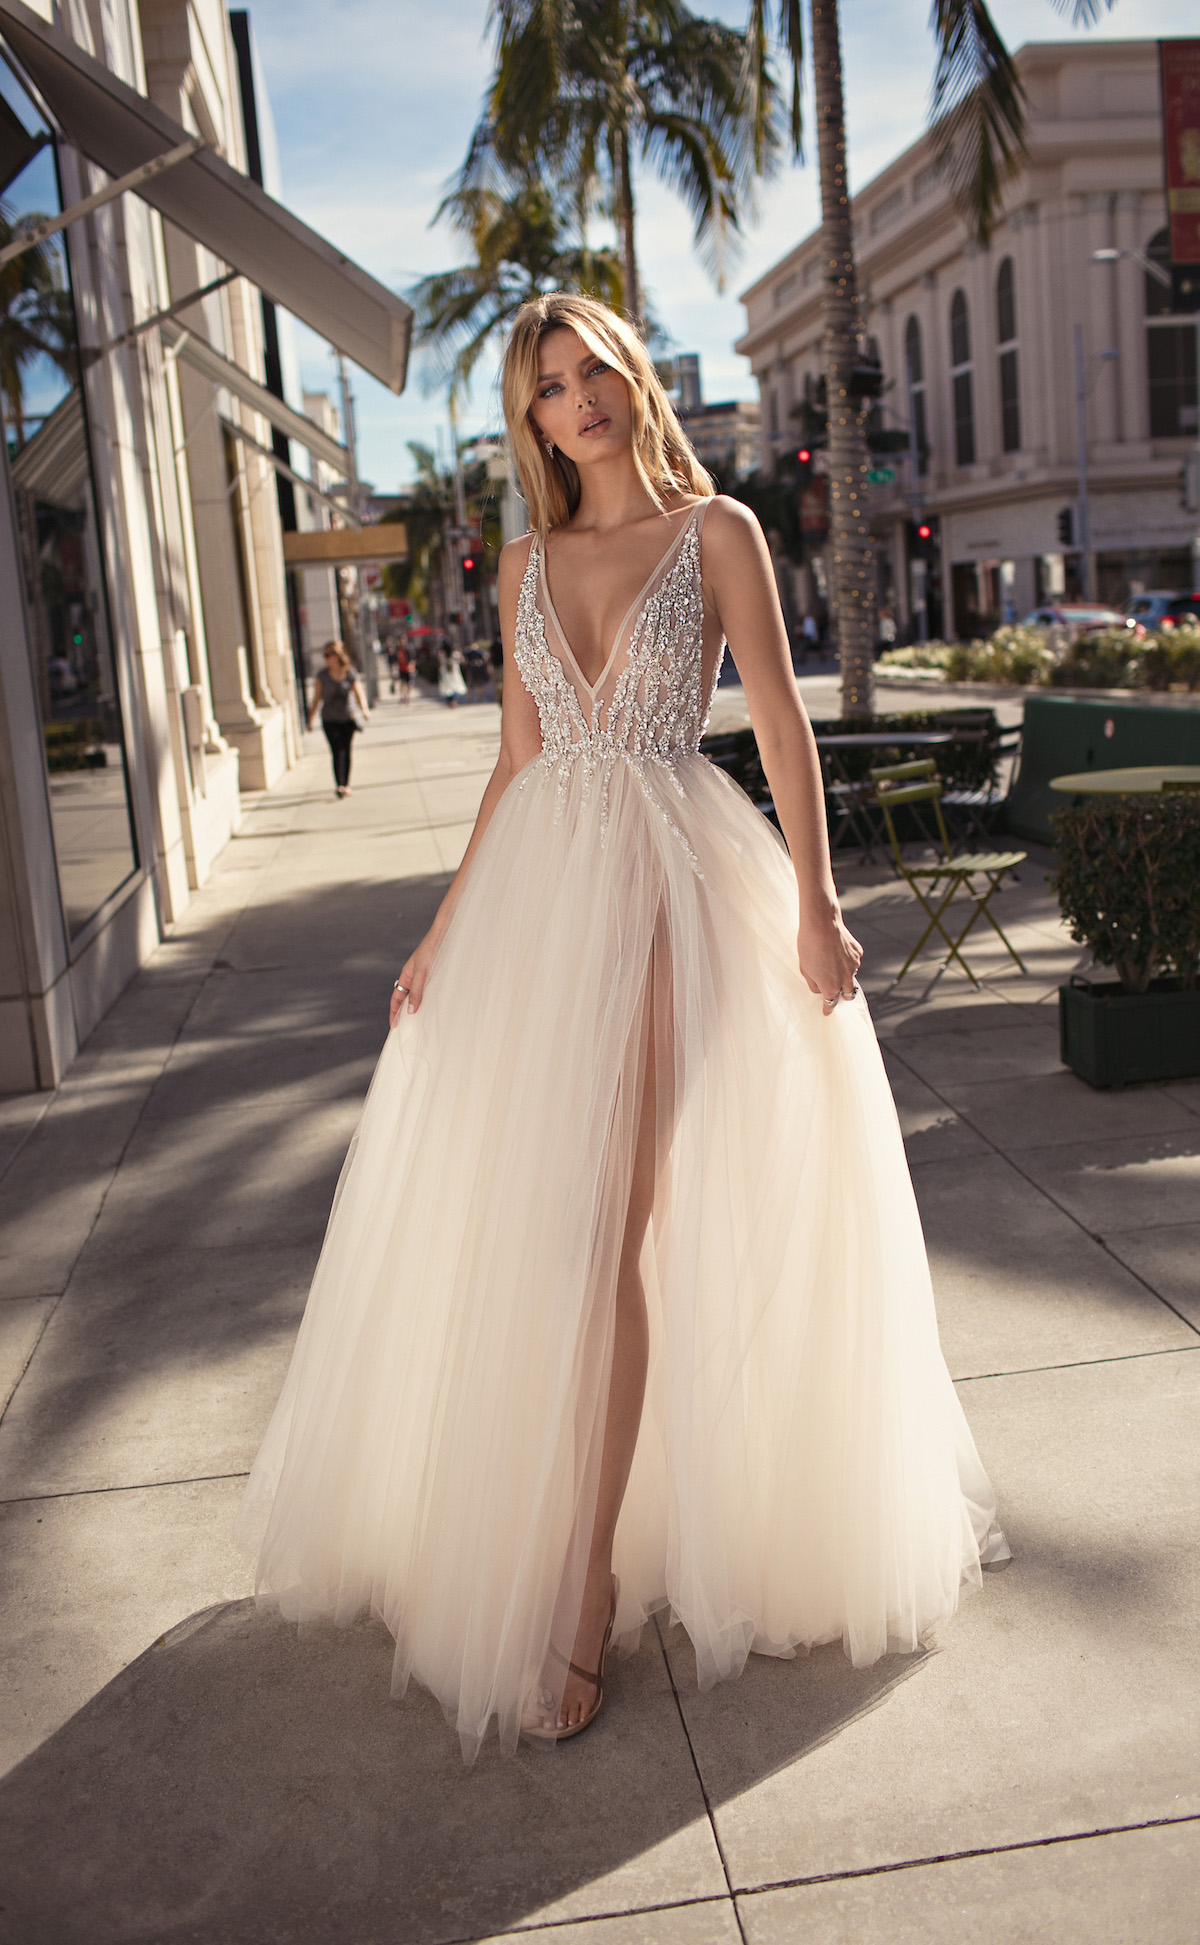 Sheer Perfection: BERTA's 2019 'City of Angels' Wedding Dress Collection